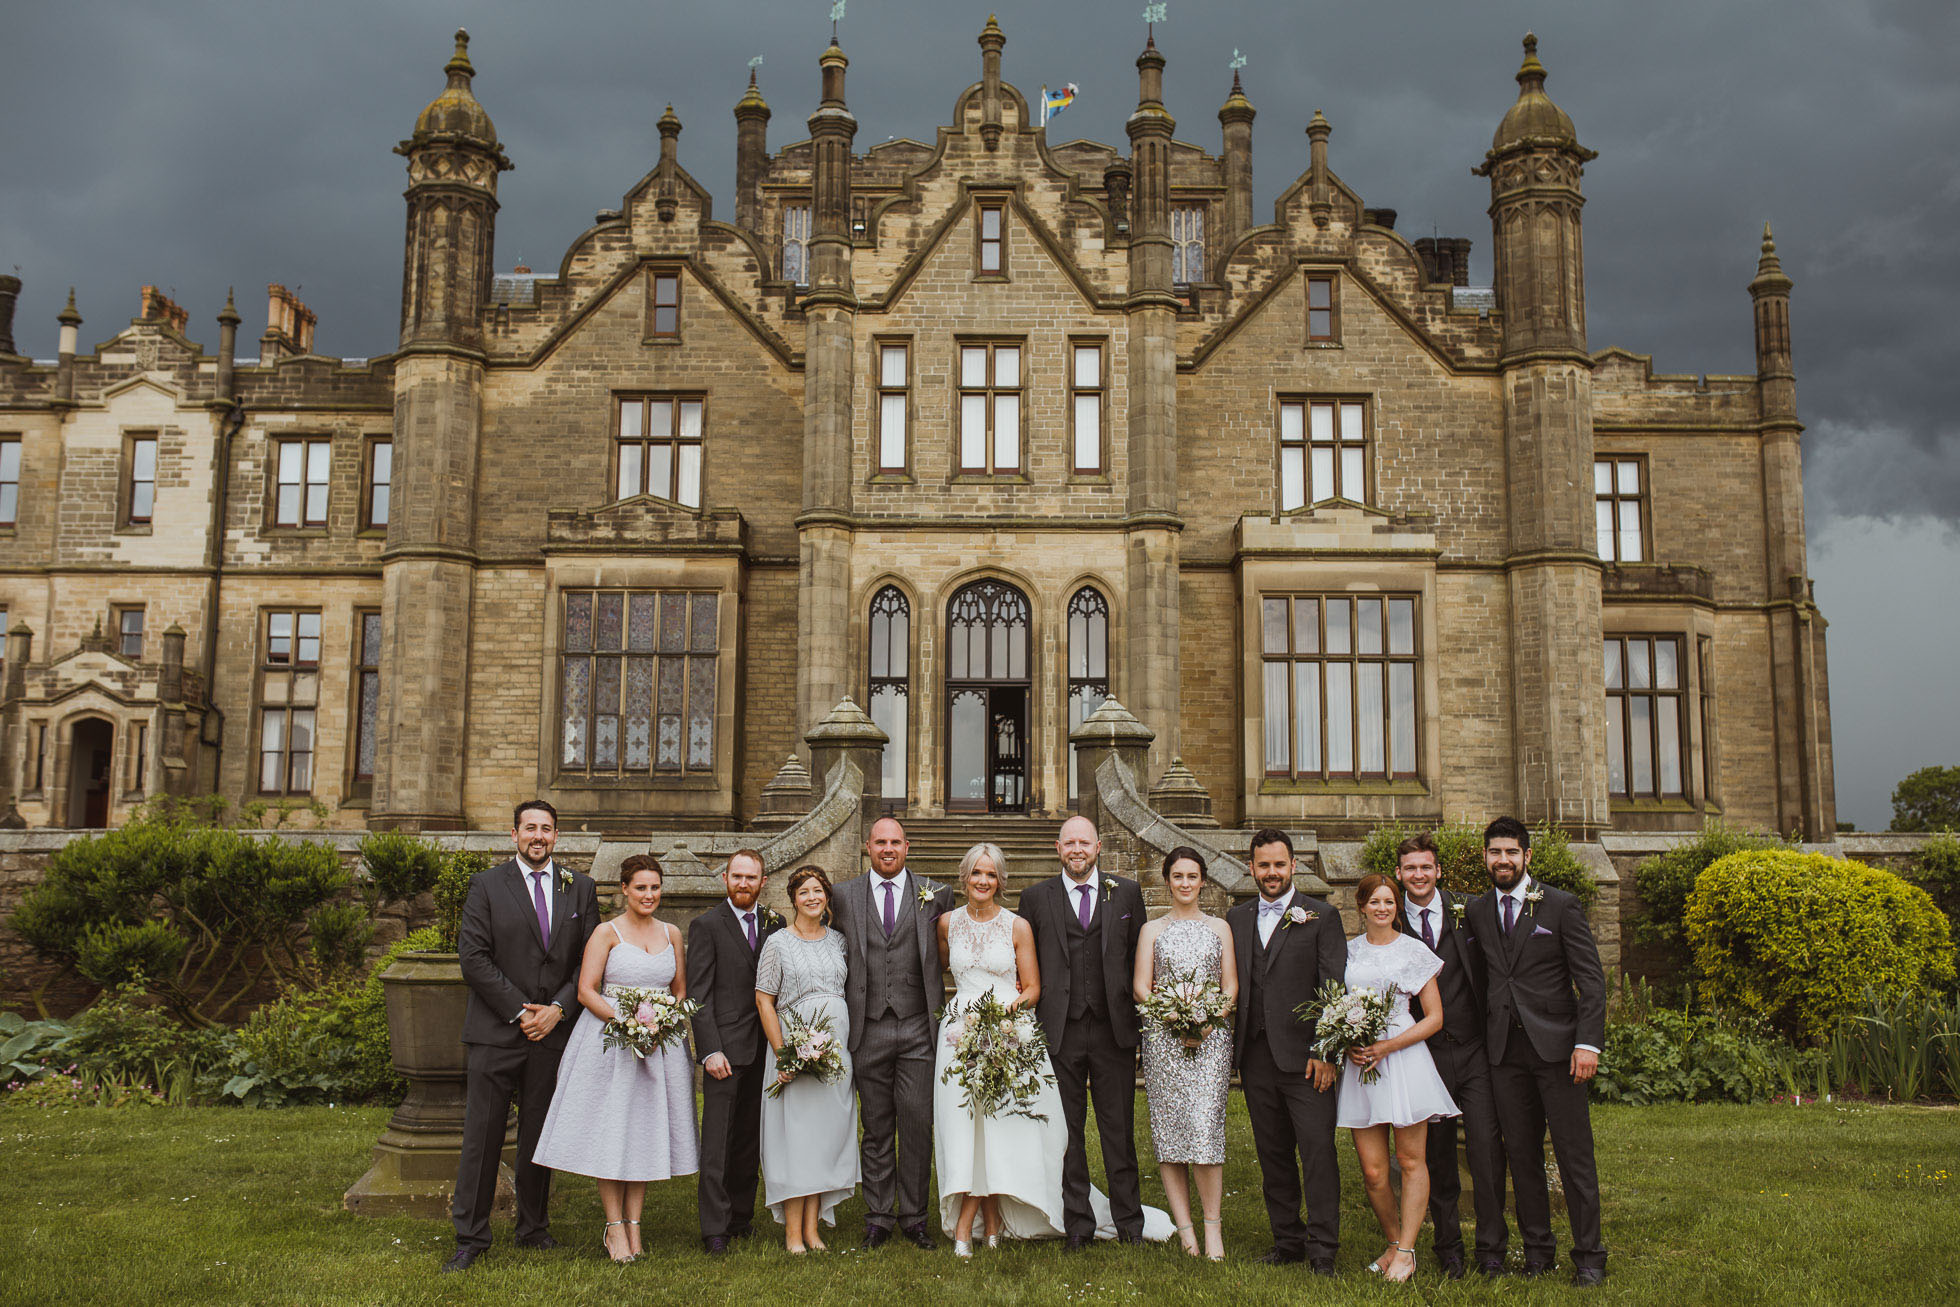 allerton_castle_wedding_photographer-60.jpg